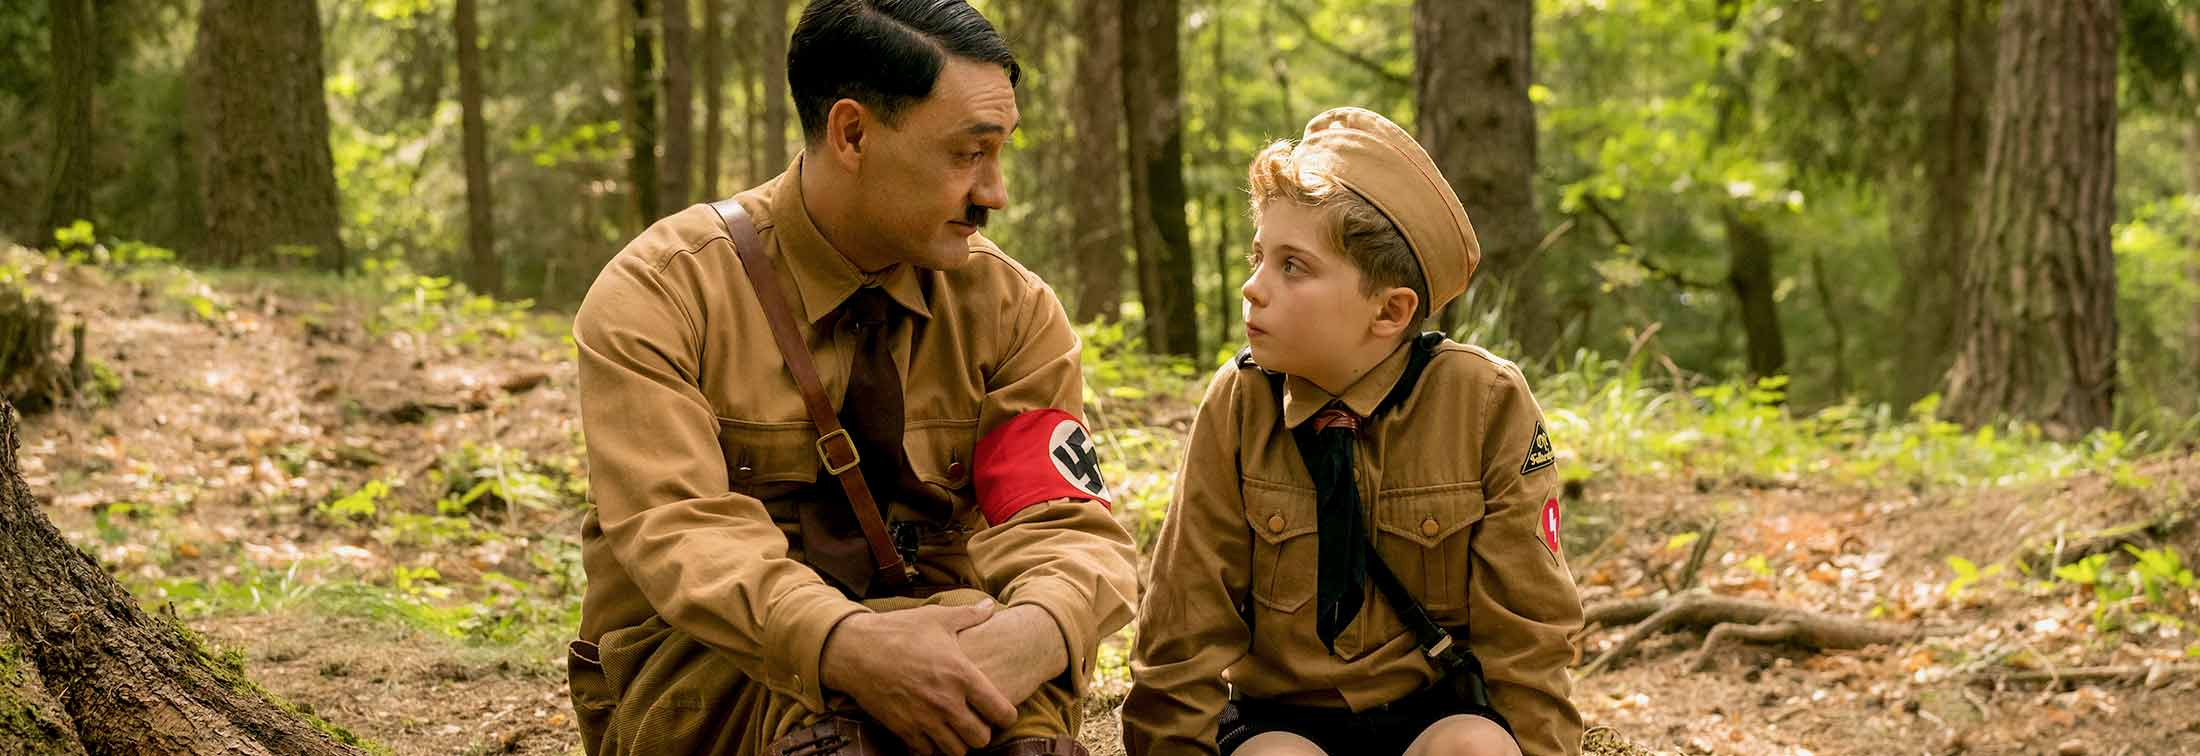 Jojo Rabbit - Taika Waititi strikes comedy gold again... with Adolf Hitler